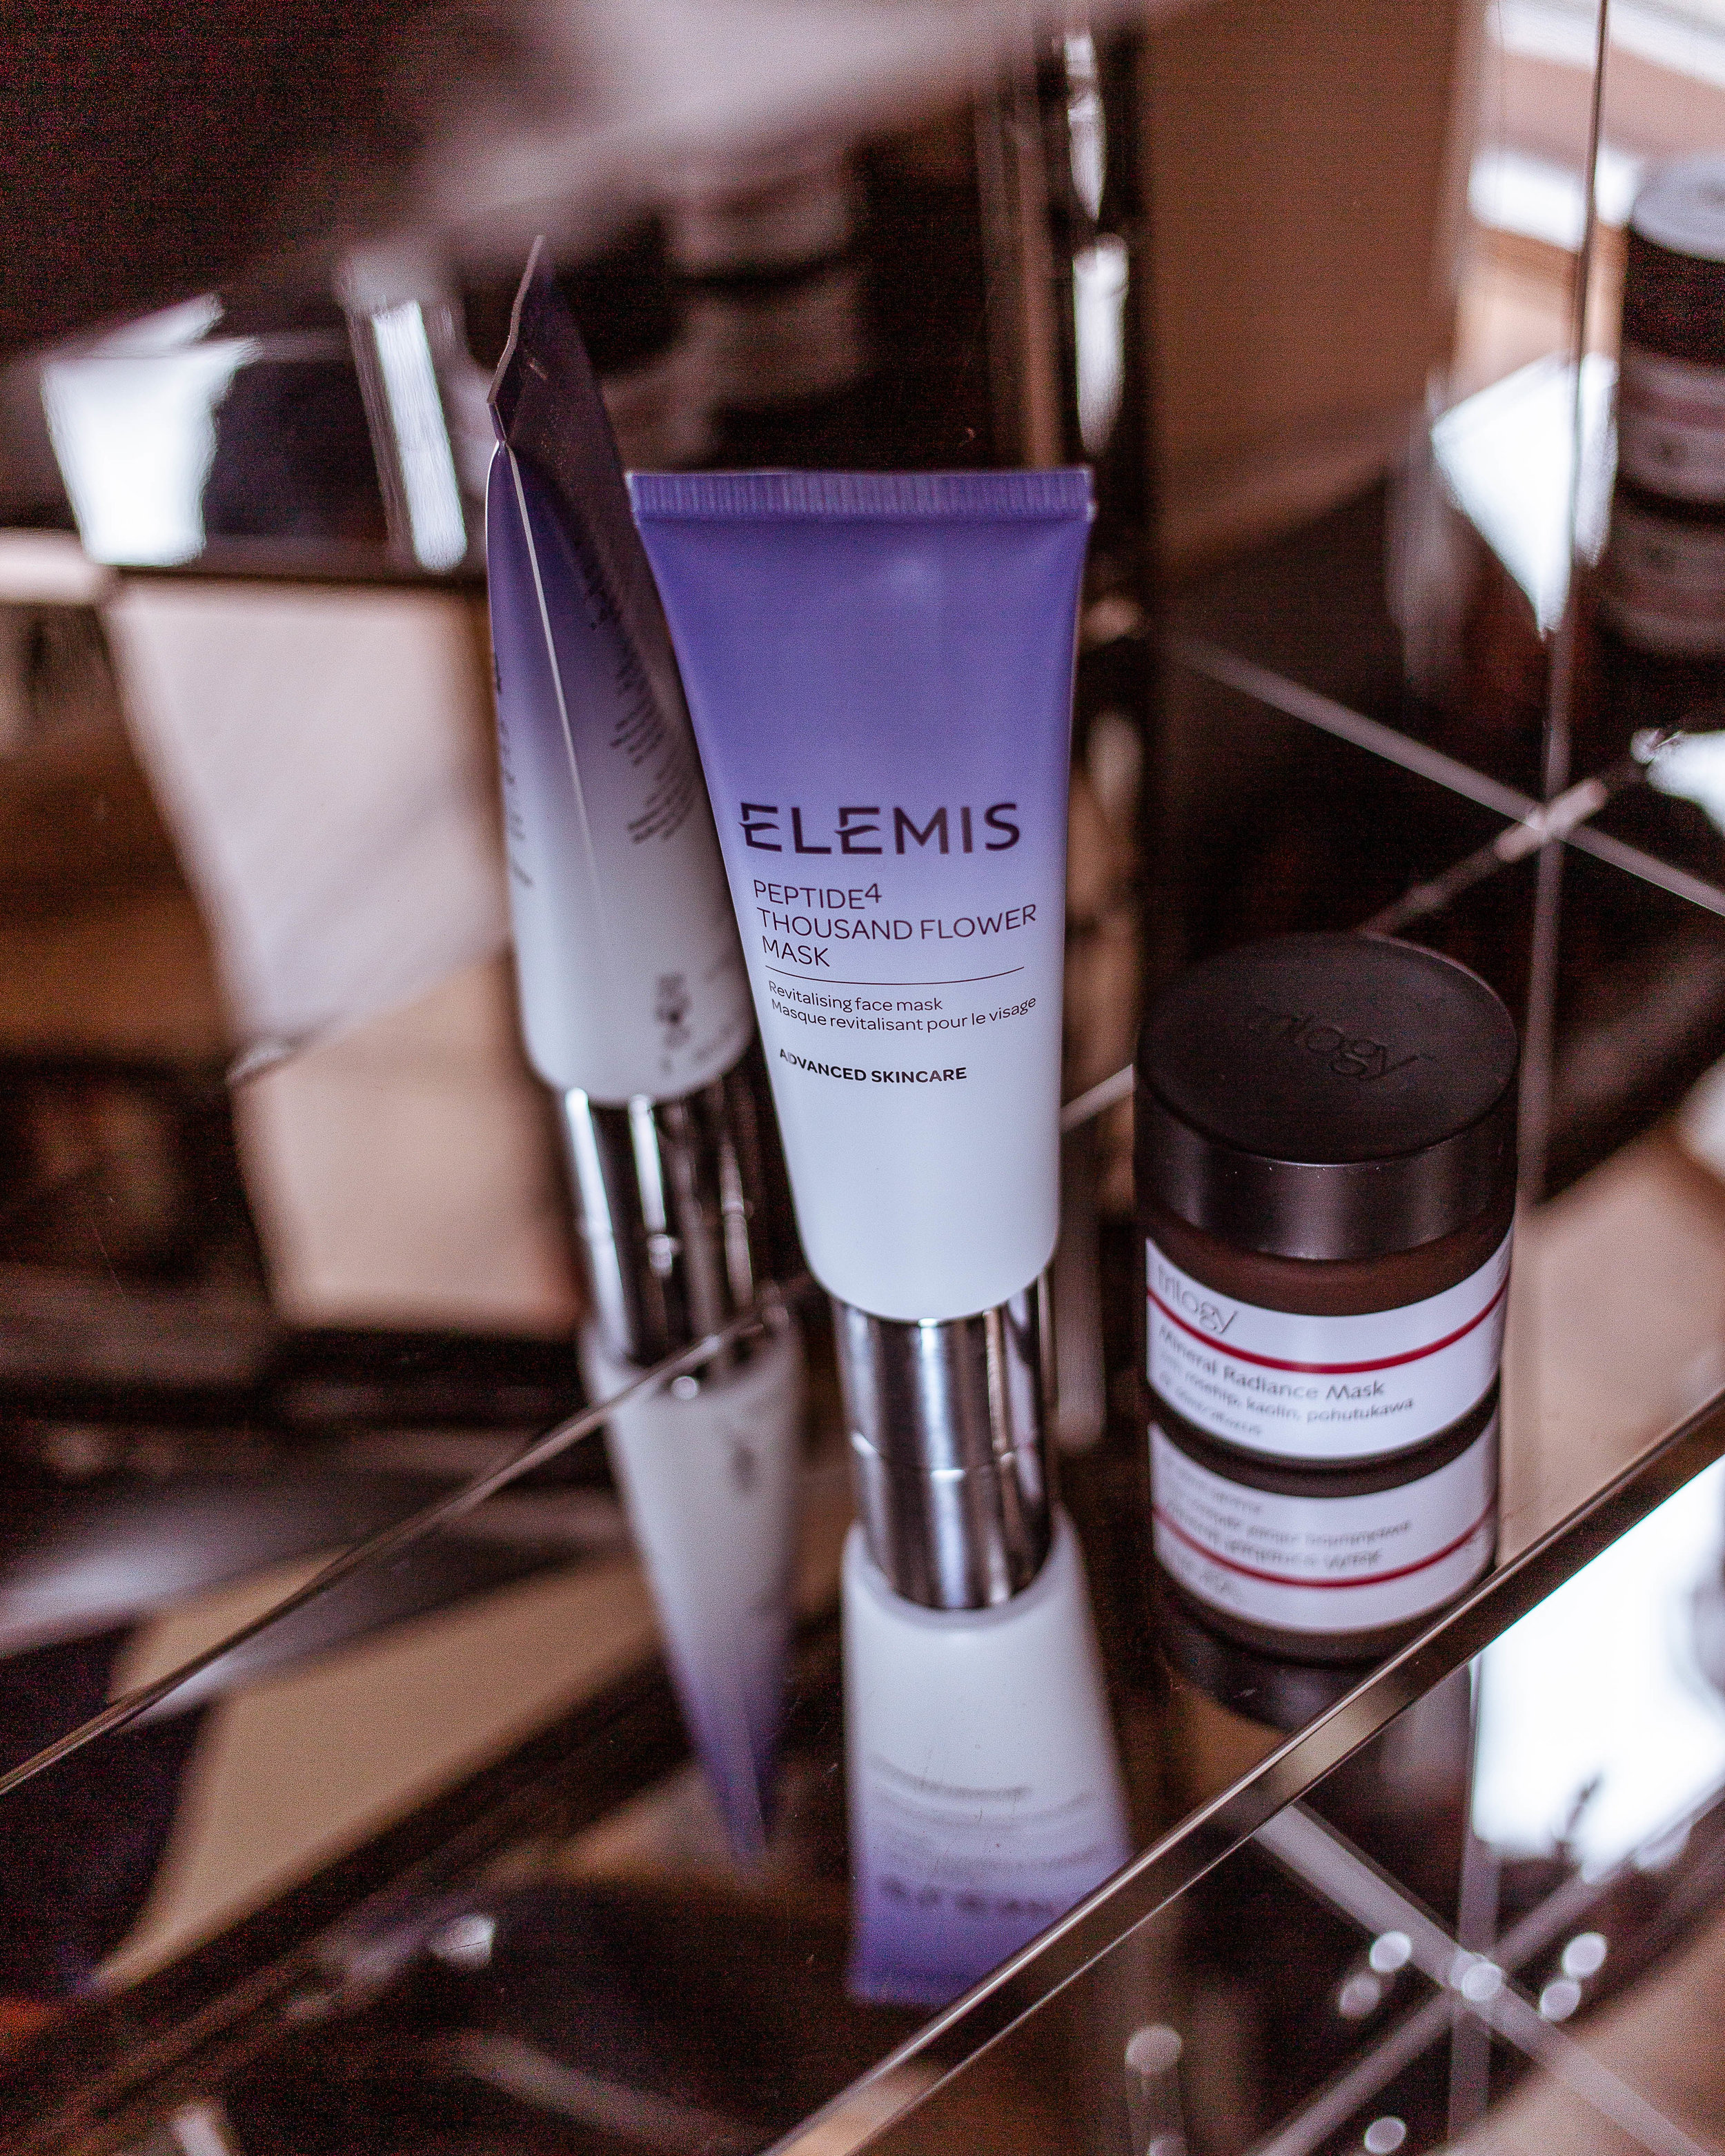 L-R: Elemis Thousand Flower Mask, Trilogy Mineral Radiance Mask